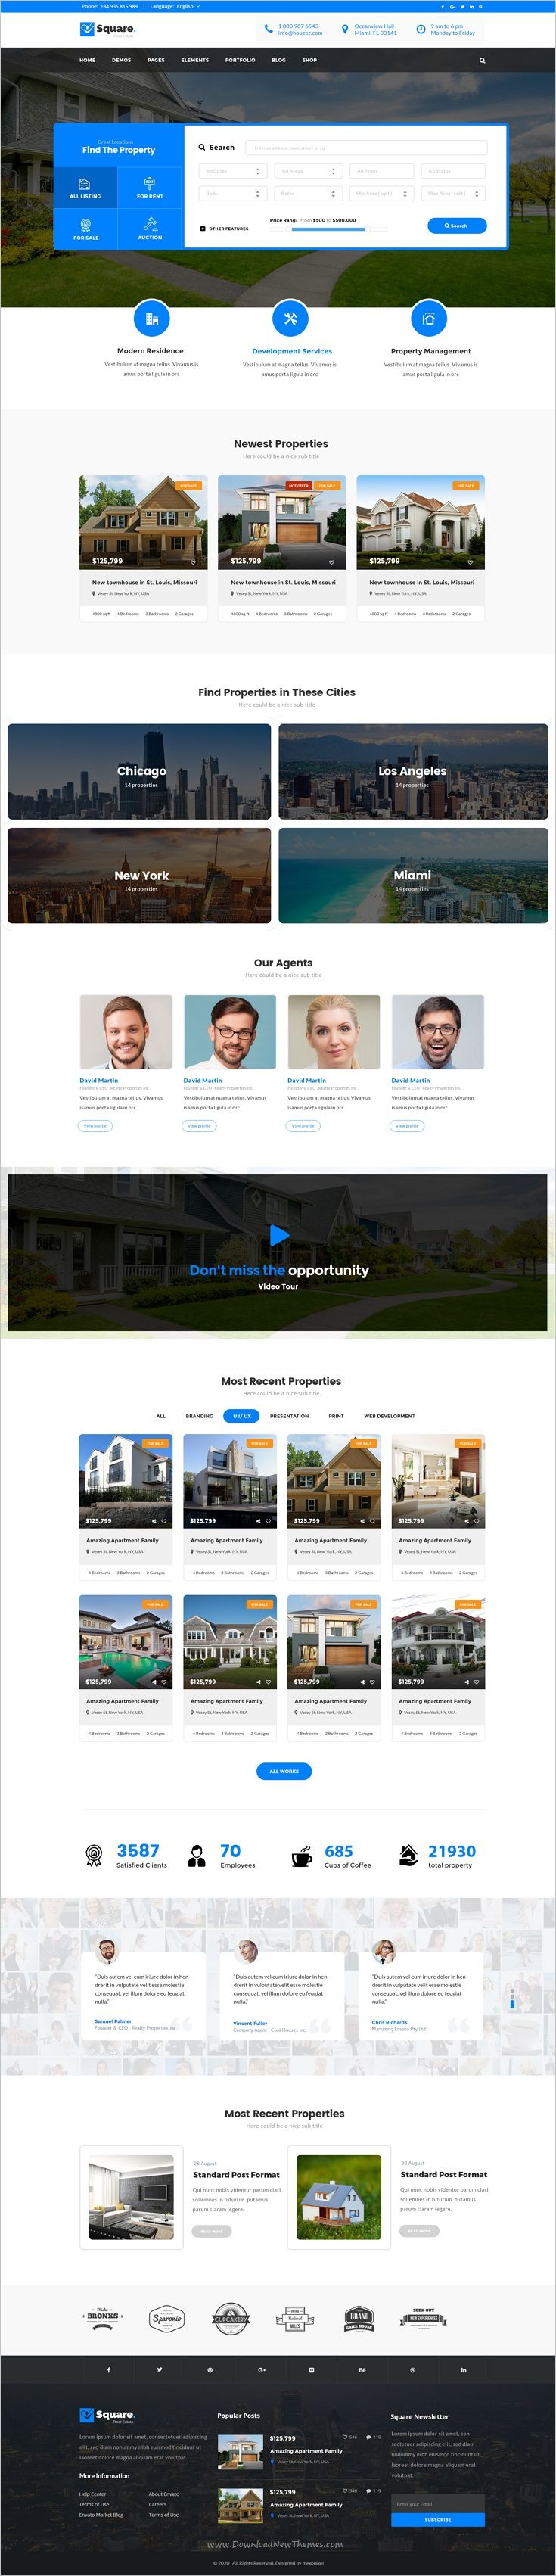 Square is a wonderful premium #PSD template for #property #listing #portal, as well as agent and real estate agency's website download now➩ https://themeforest.net/item/square-professional-real-estate-psd-templates/18725582?ref=Datasata